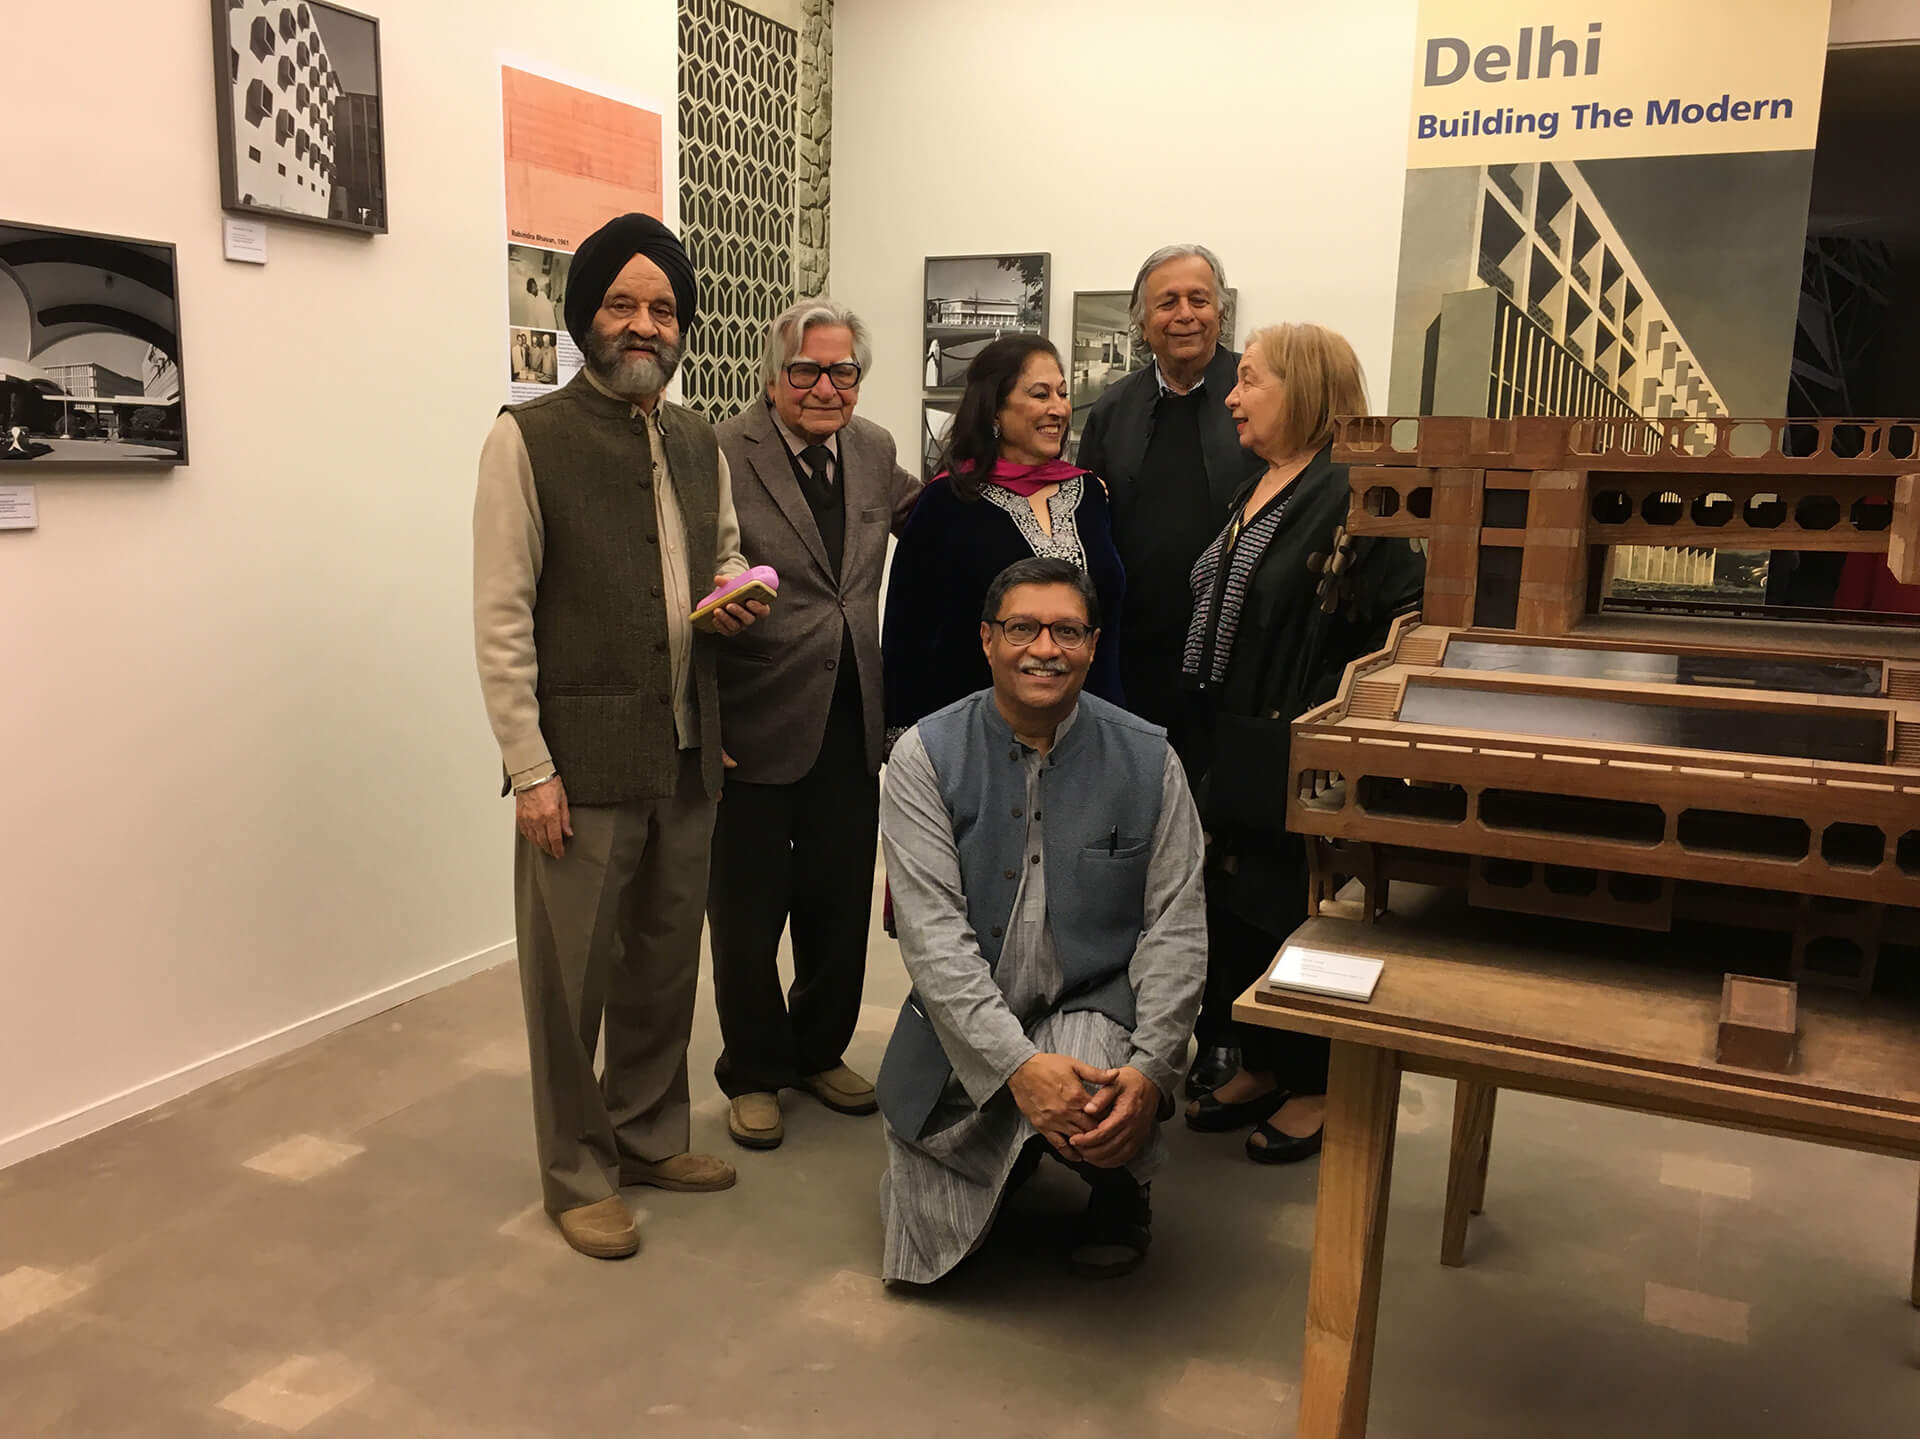 From left to right: Kuldip Singh, Mahendra Raj, Kiran Nadar, Raj Rewal, Helene Rewal; Ram Rahman in front | Kuldip Singh tribute | STIRworld